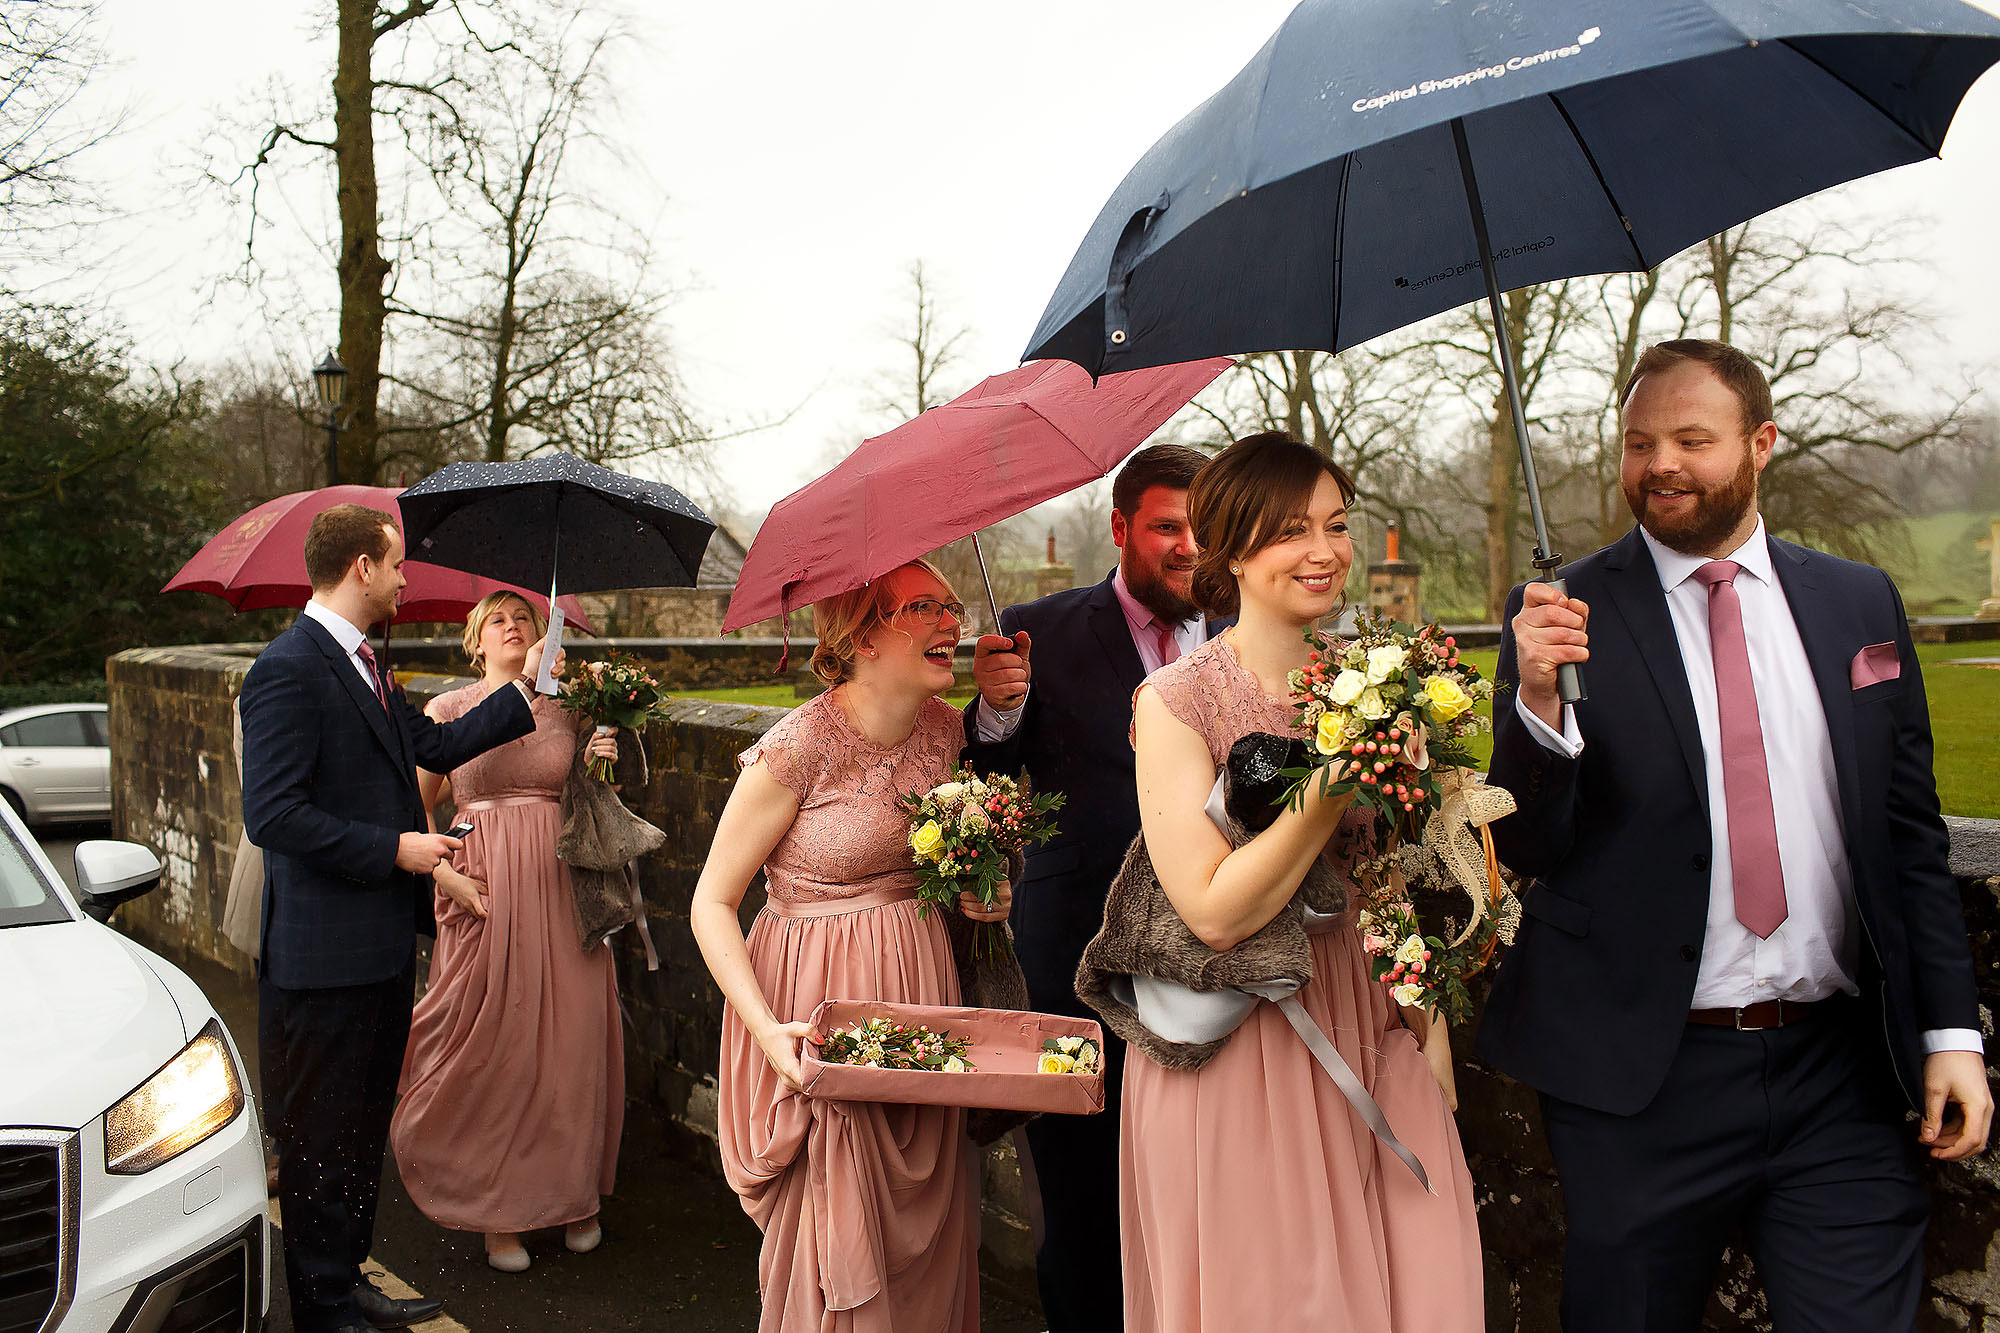 Bridesmaids arriving at Stonyhurst College holding umbrellas as they walk towards the church | Mitton Hall wedding photographs by Toni Darcy Photography